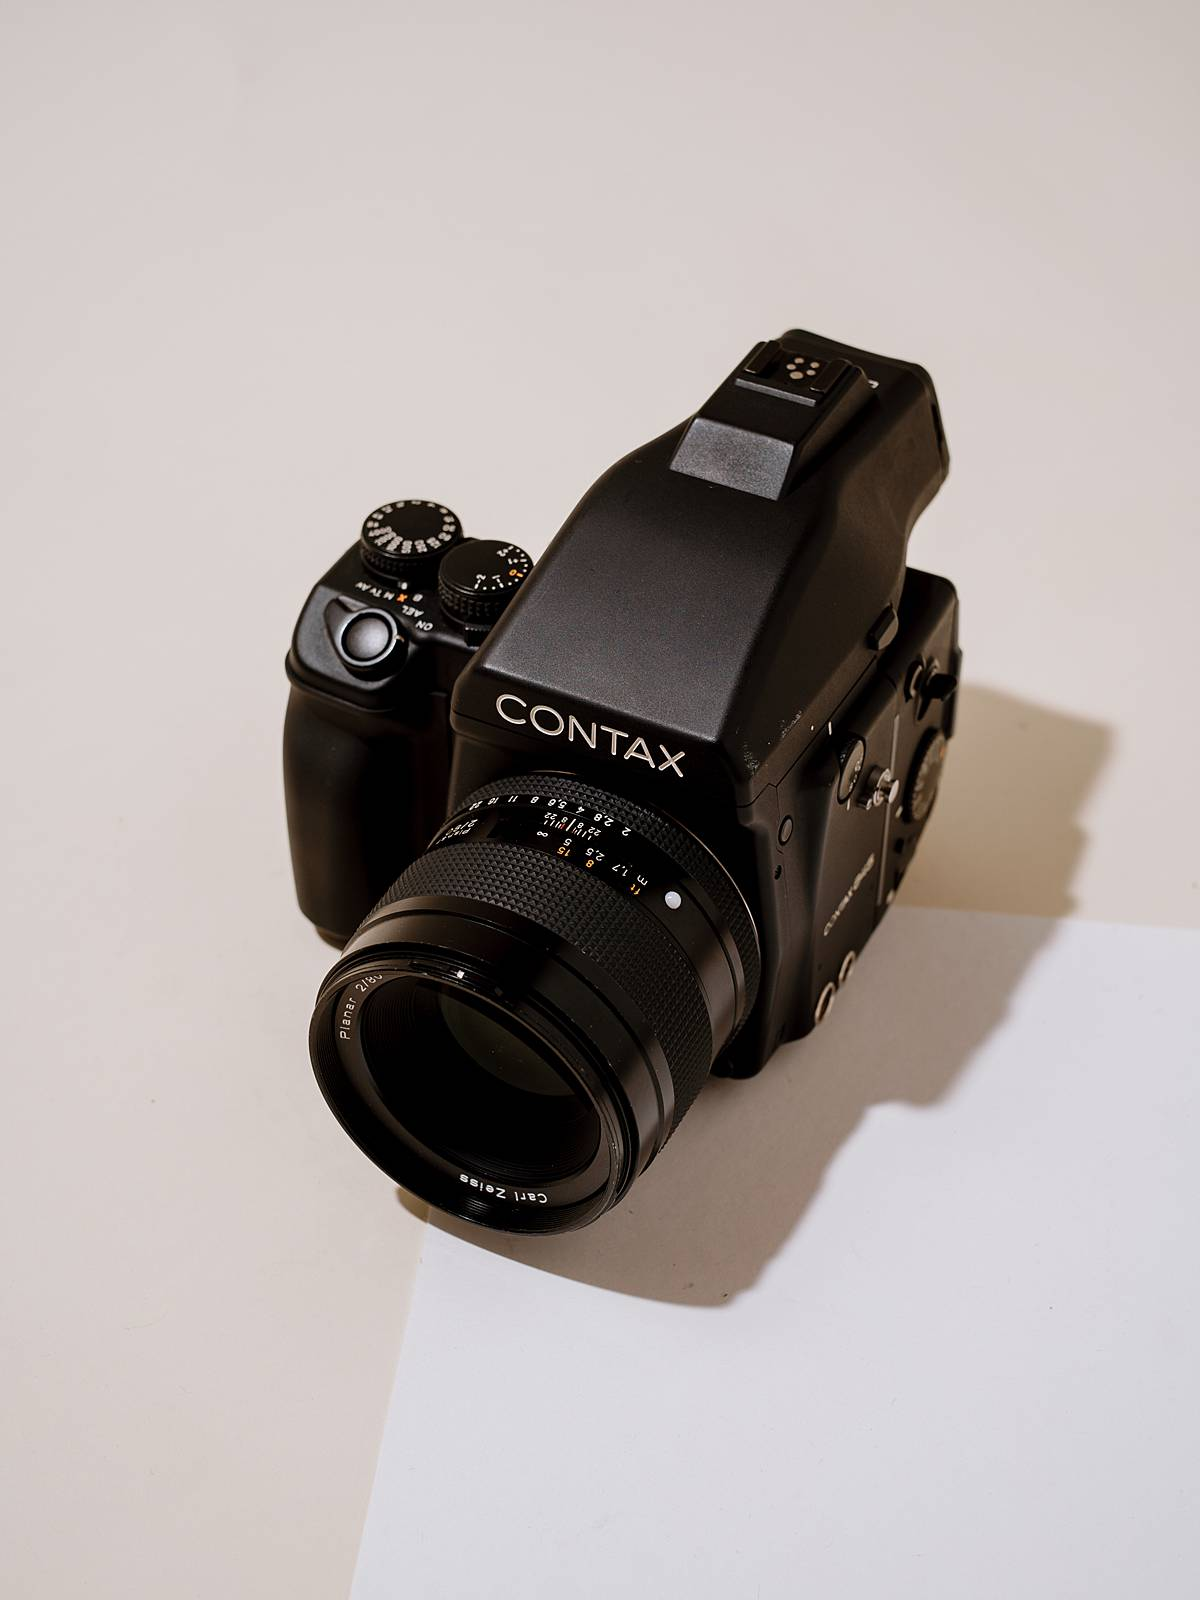 contax 645 medium format film camera review with body in studio and lit like product photography